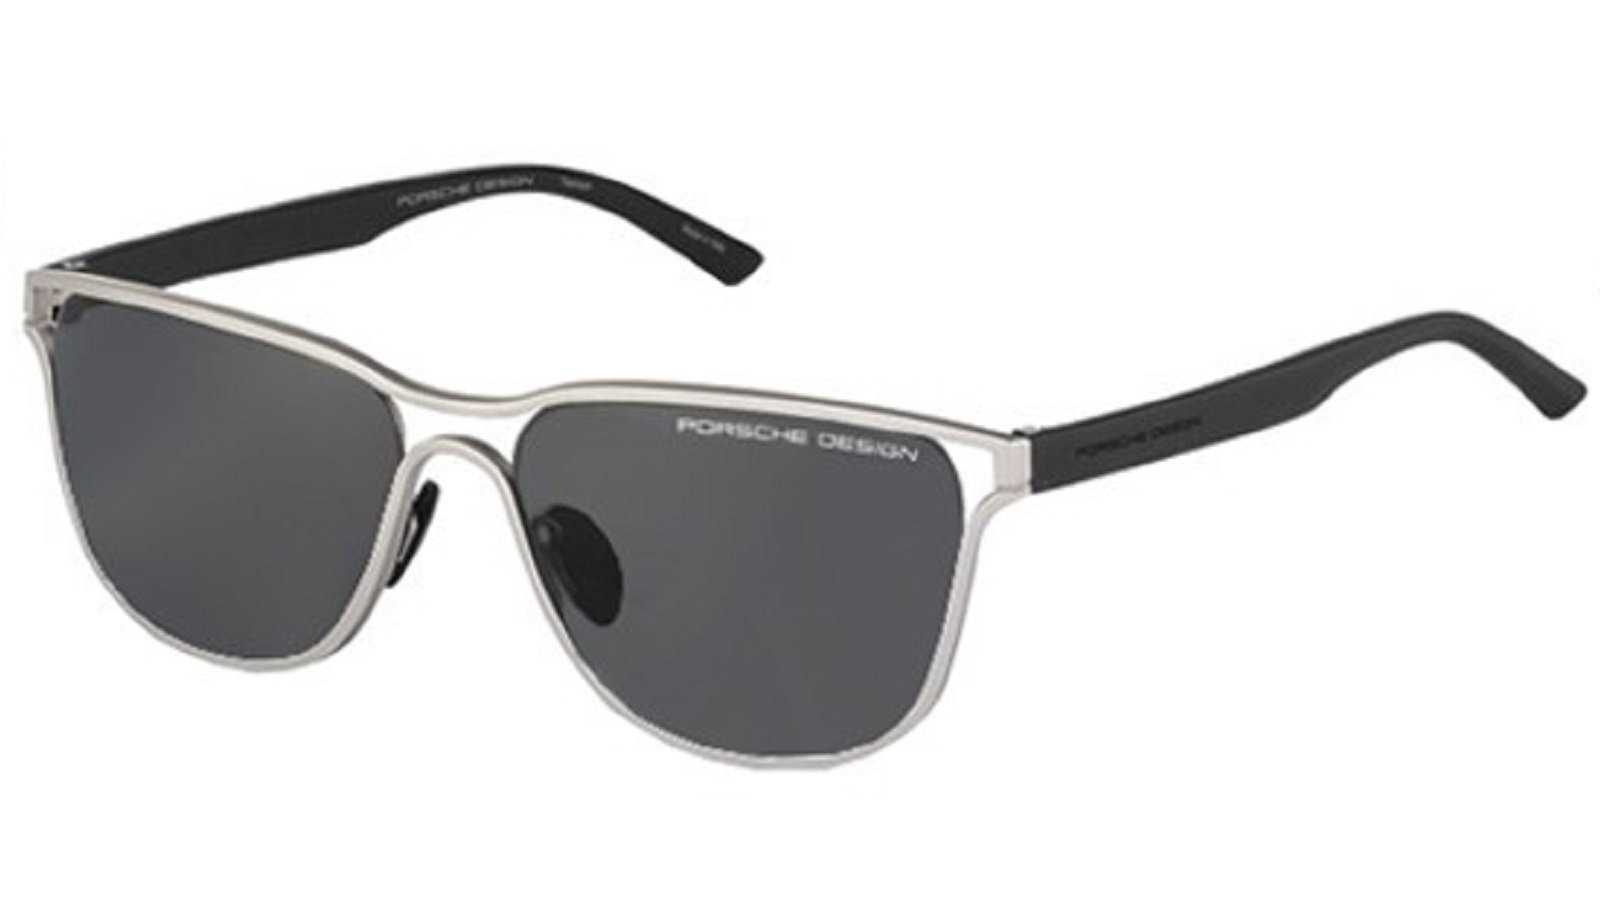 Porsche Design P'8647 Sunglasses